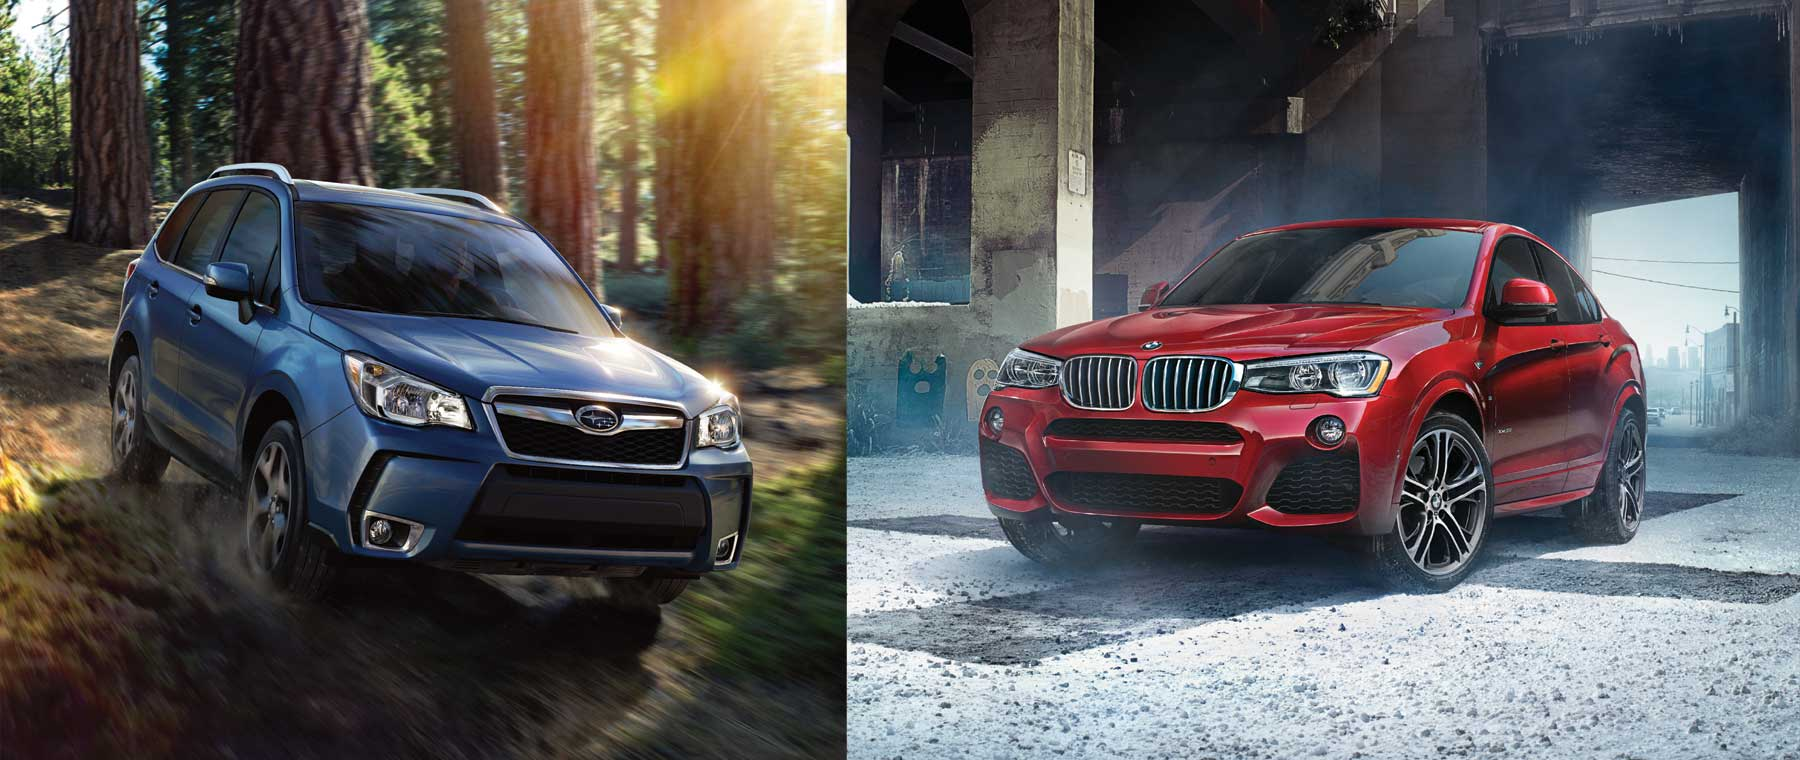 Otto's Subaru Forester & BMW X4 take on the commute